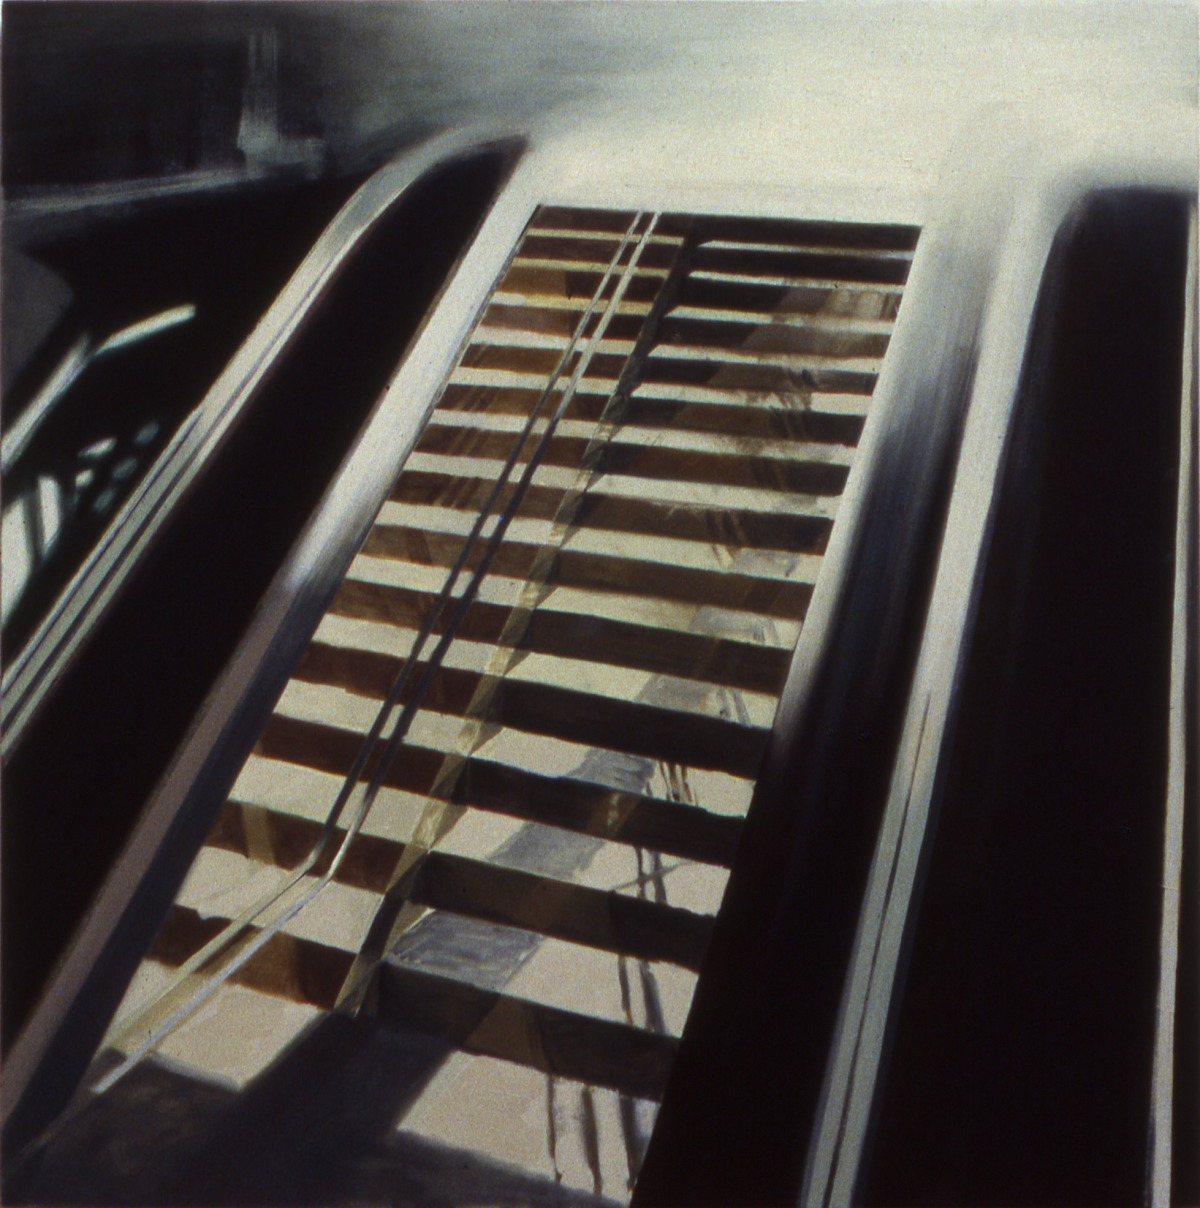 Mirrored escalator 1995